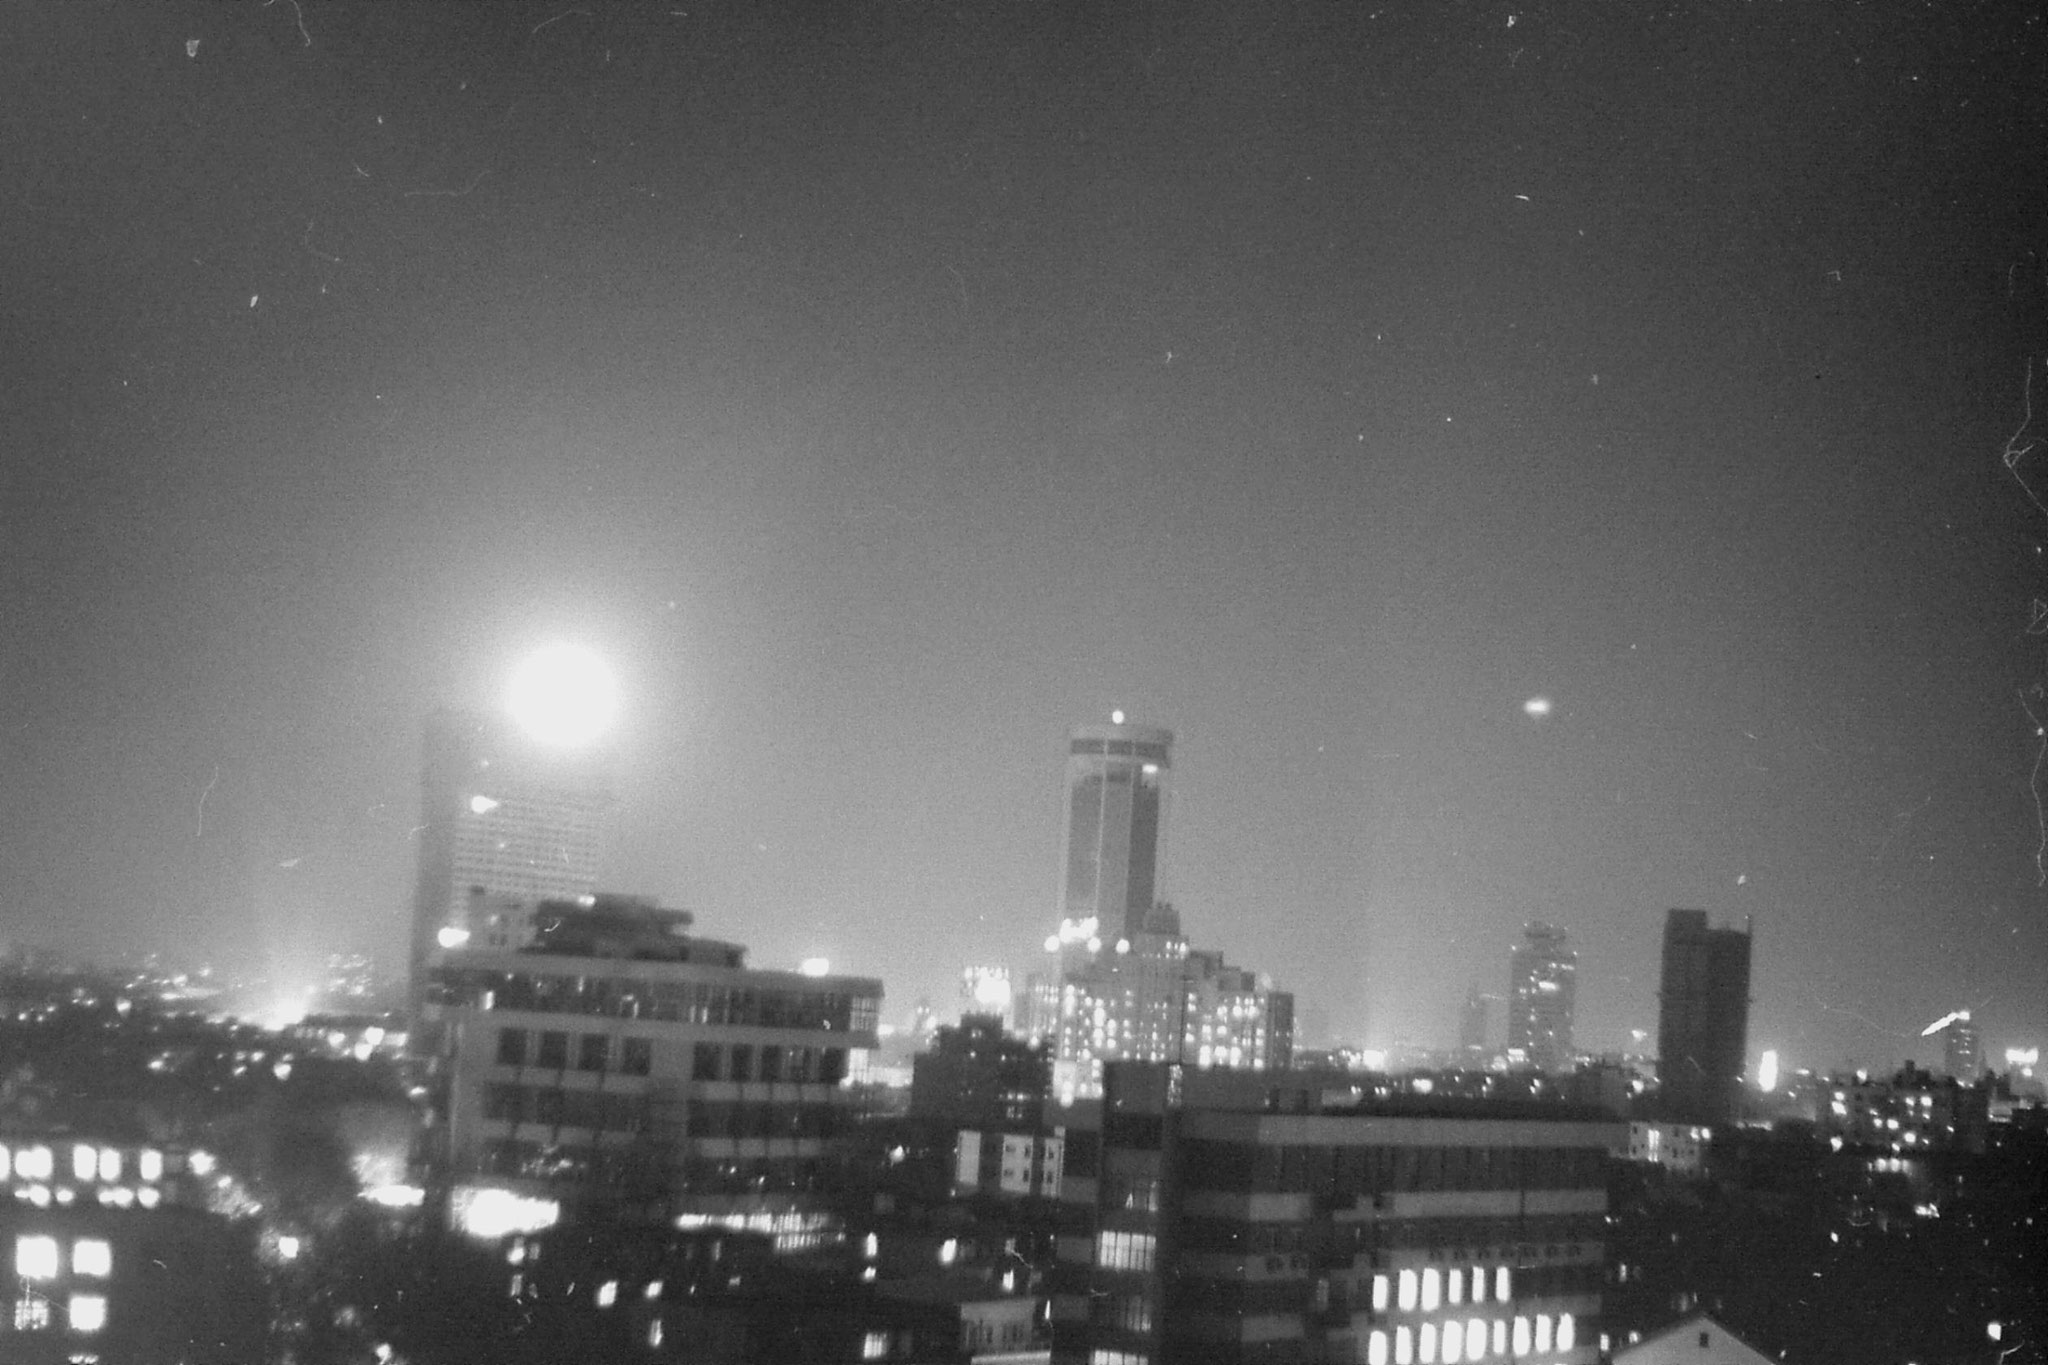 15/12/1988: 31: night view of Shanghai